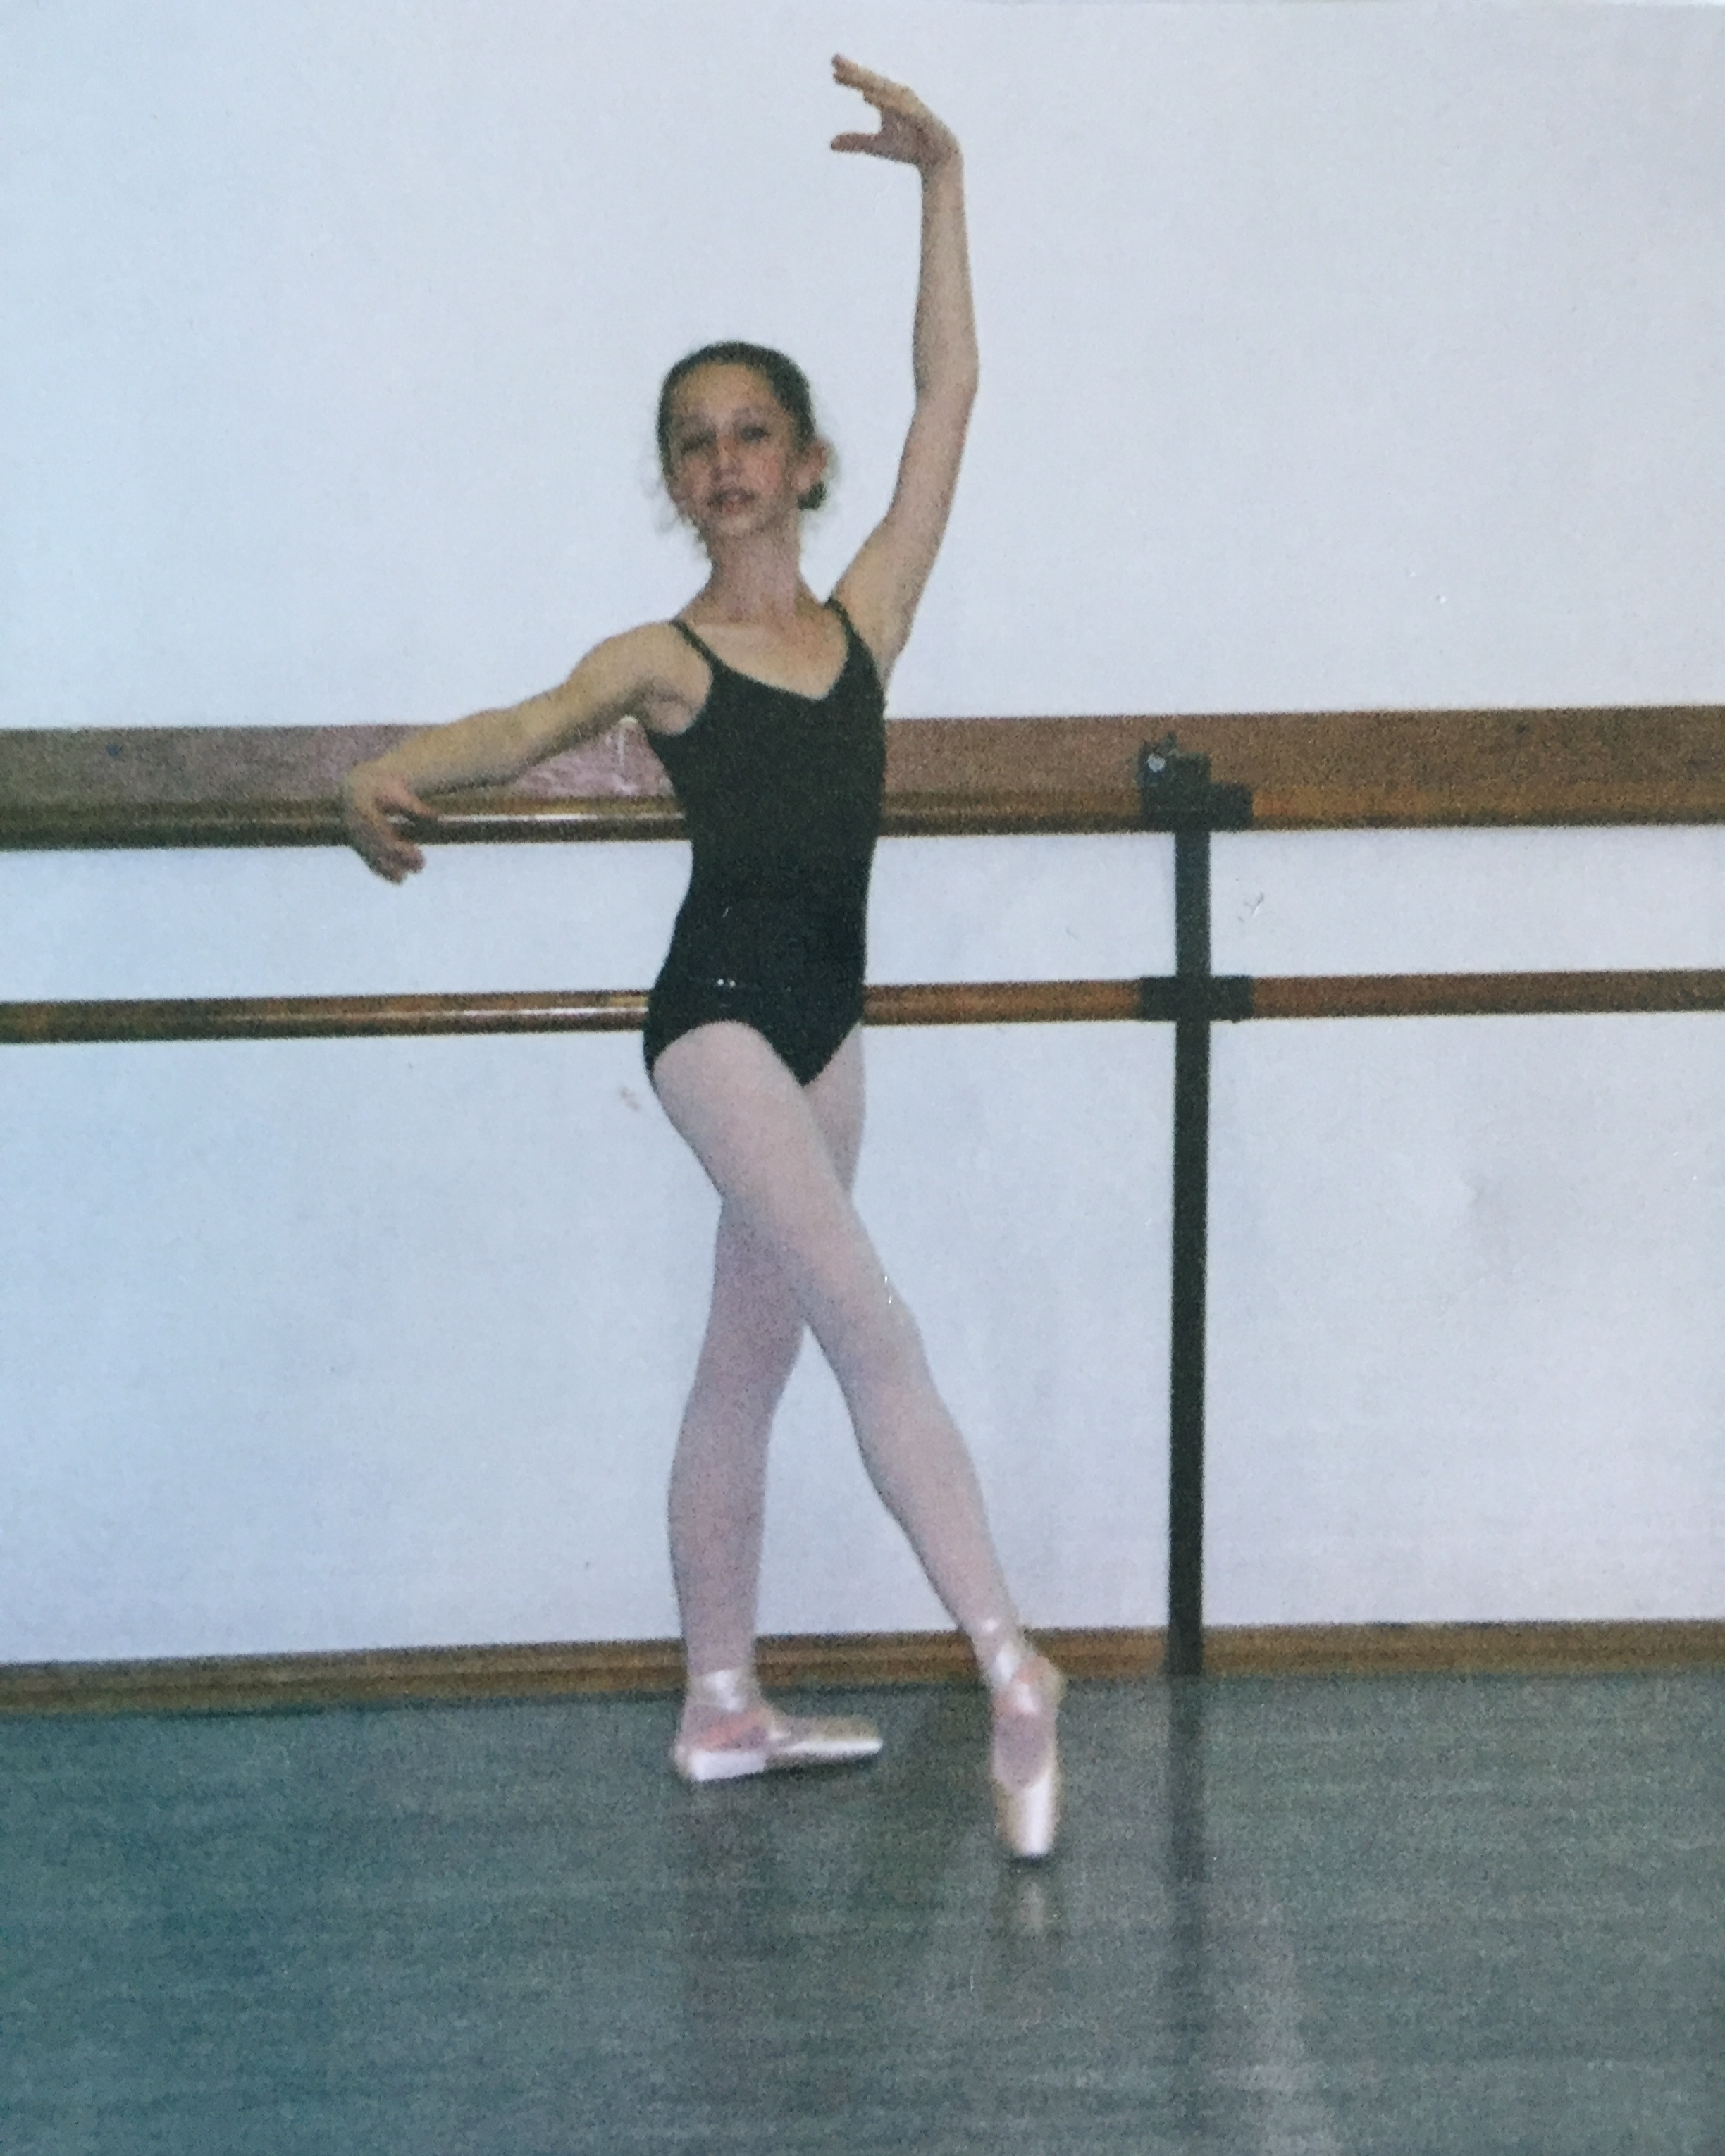 - After training with Hannah for 3 years, she encouraged me to find a bigger ballet school. At 11 years old I began training at Ballet Pacifica and was exposed to more American training.